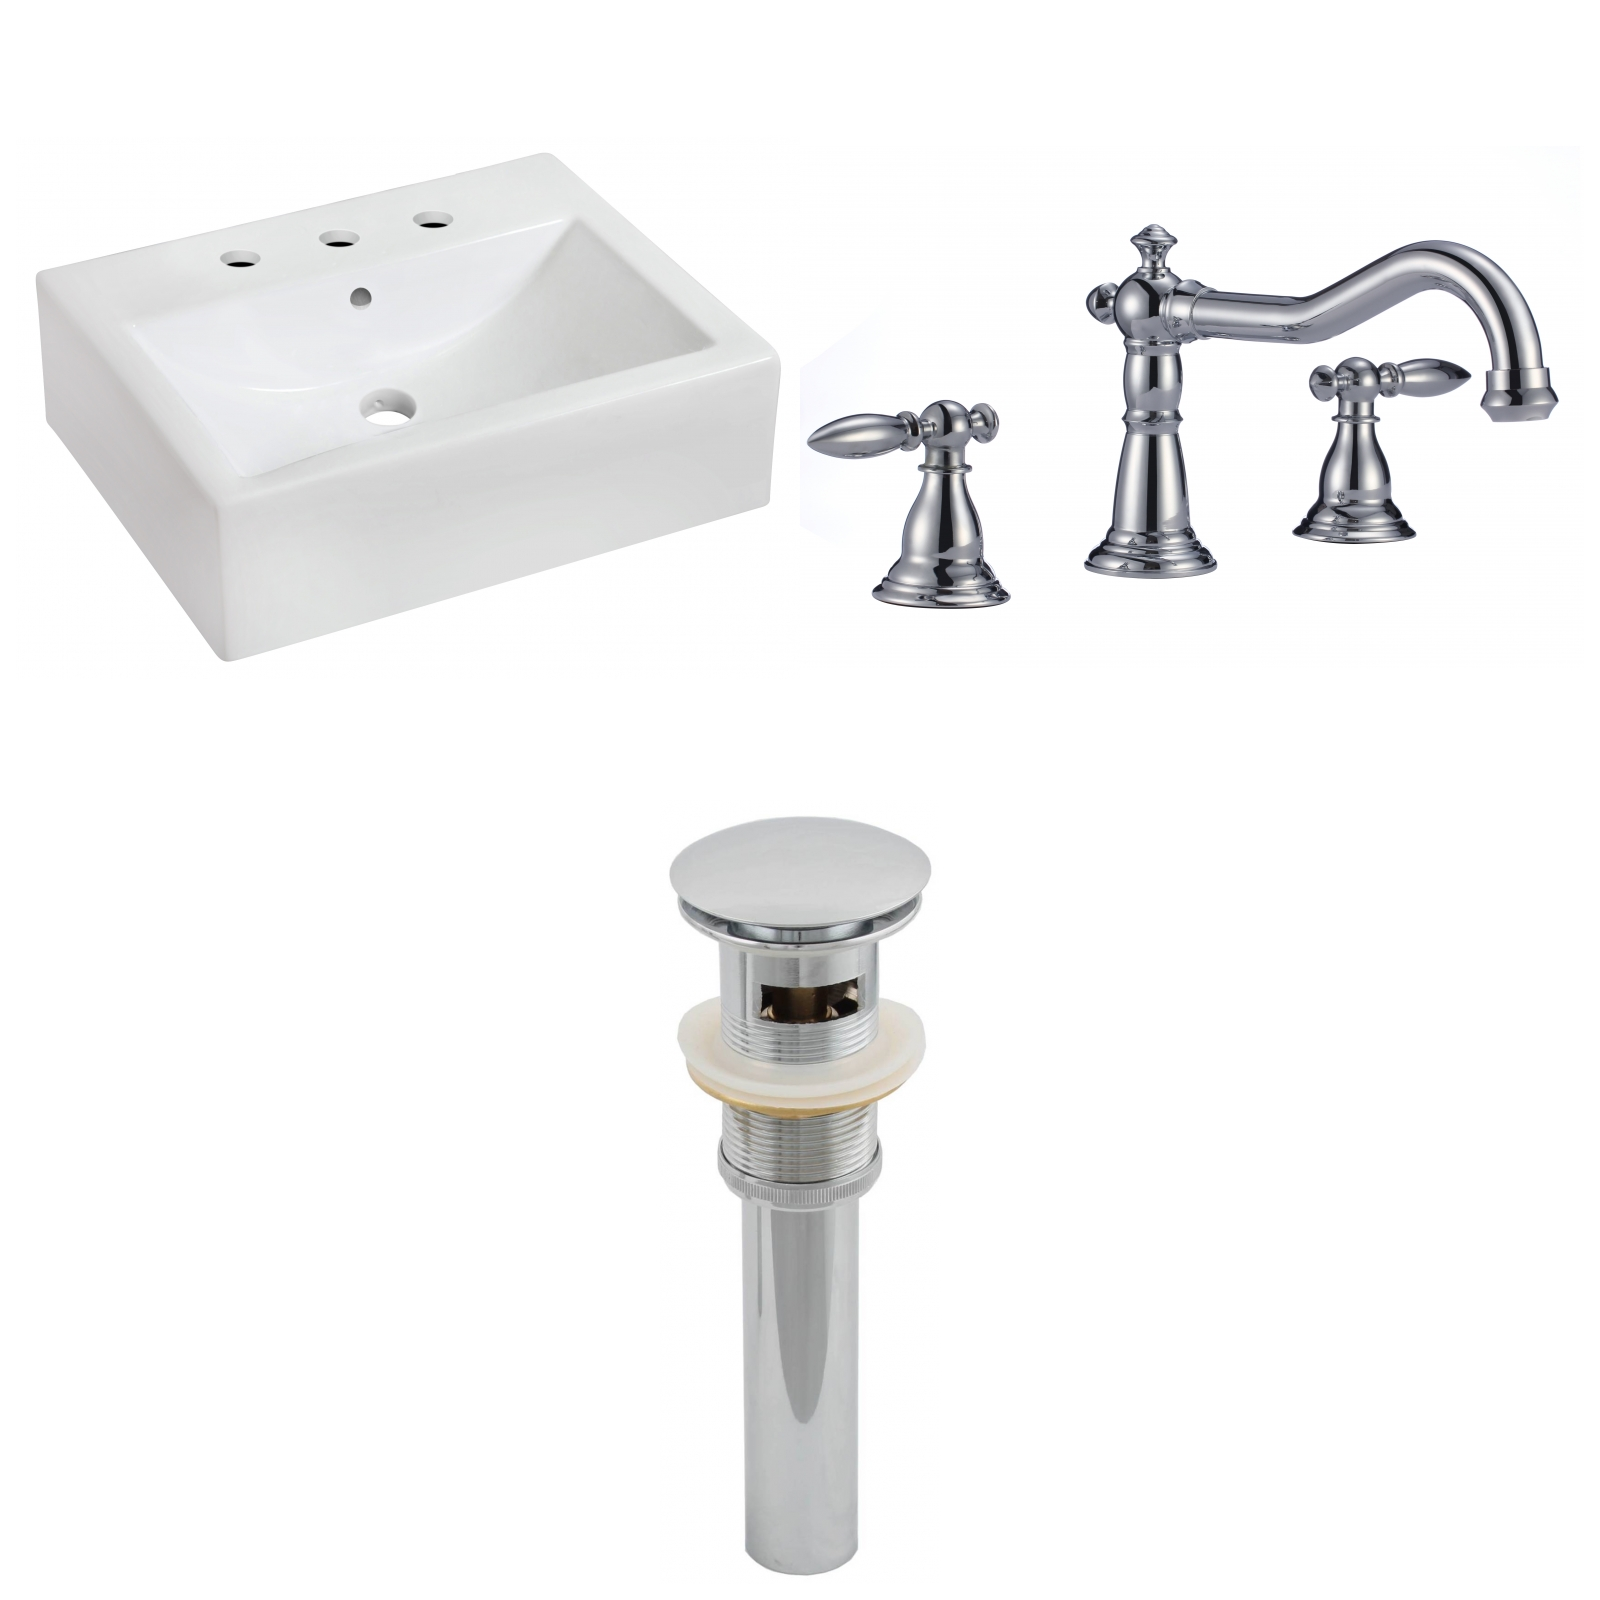 delta types shower sink vessel tub handles faucet faucets with claw bathtub roman fixtures handheld